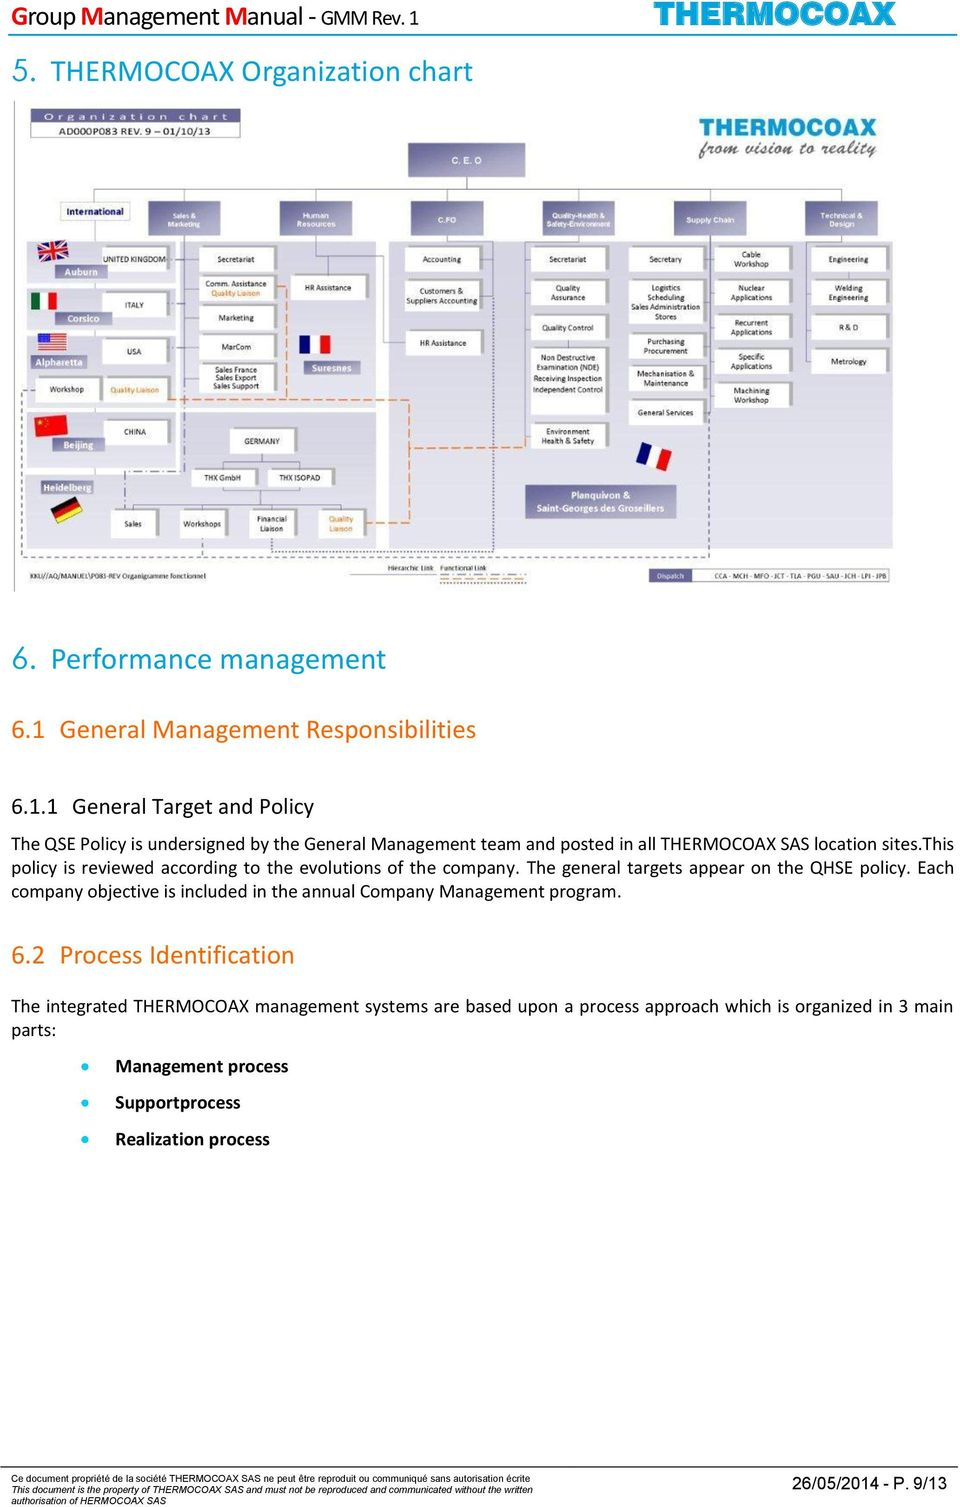 2 Process Identification The integrated management systems are based upon a process approach which is organized in 3 main parts: Management process Supportprocess Realization process Ce document